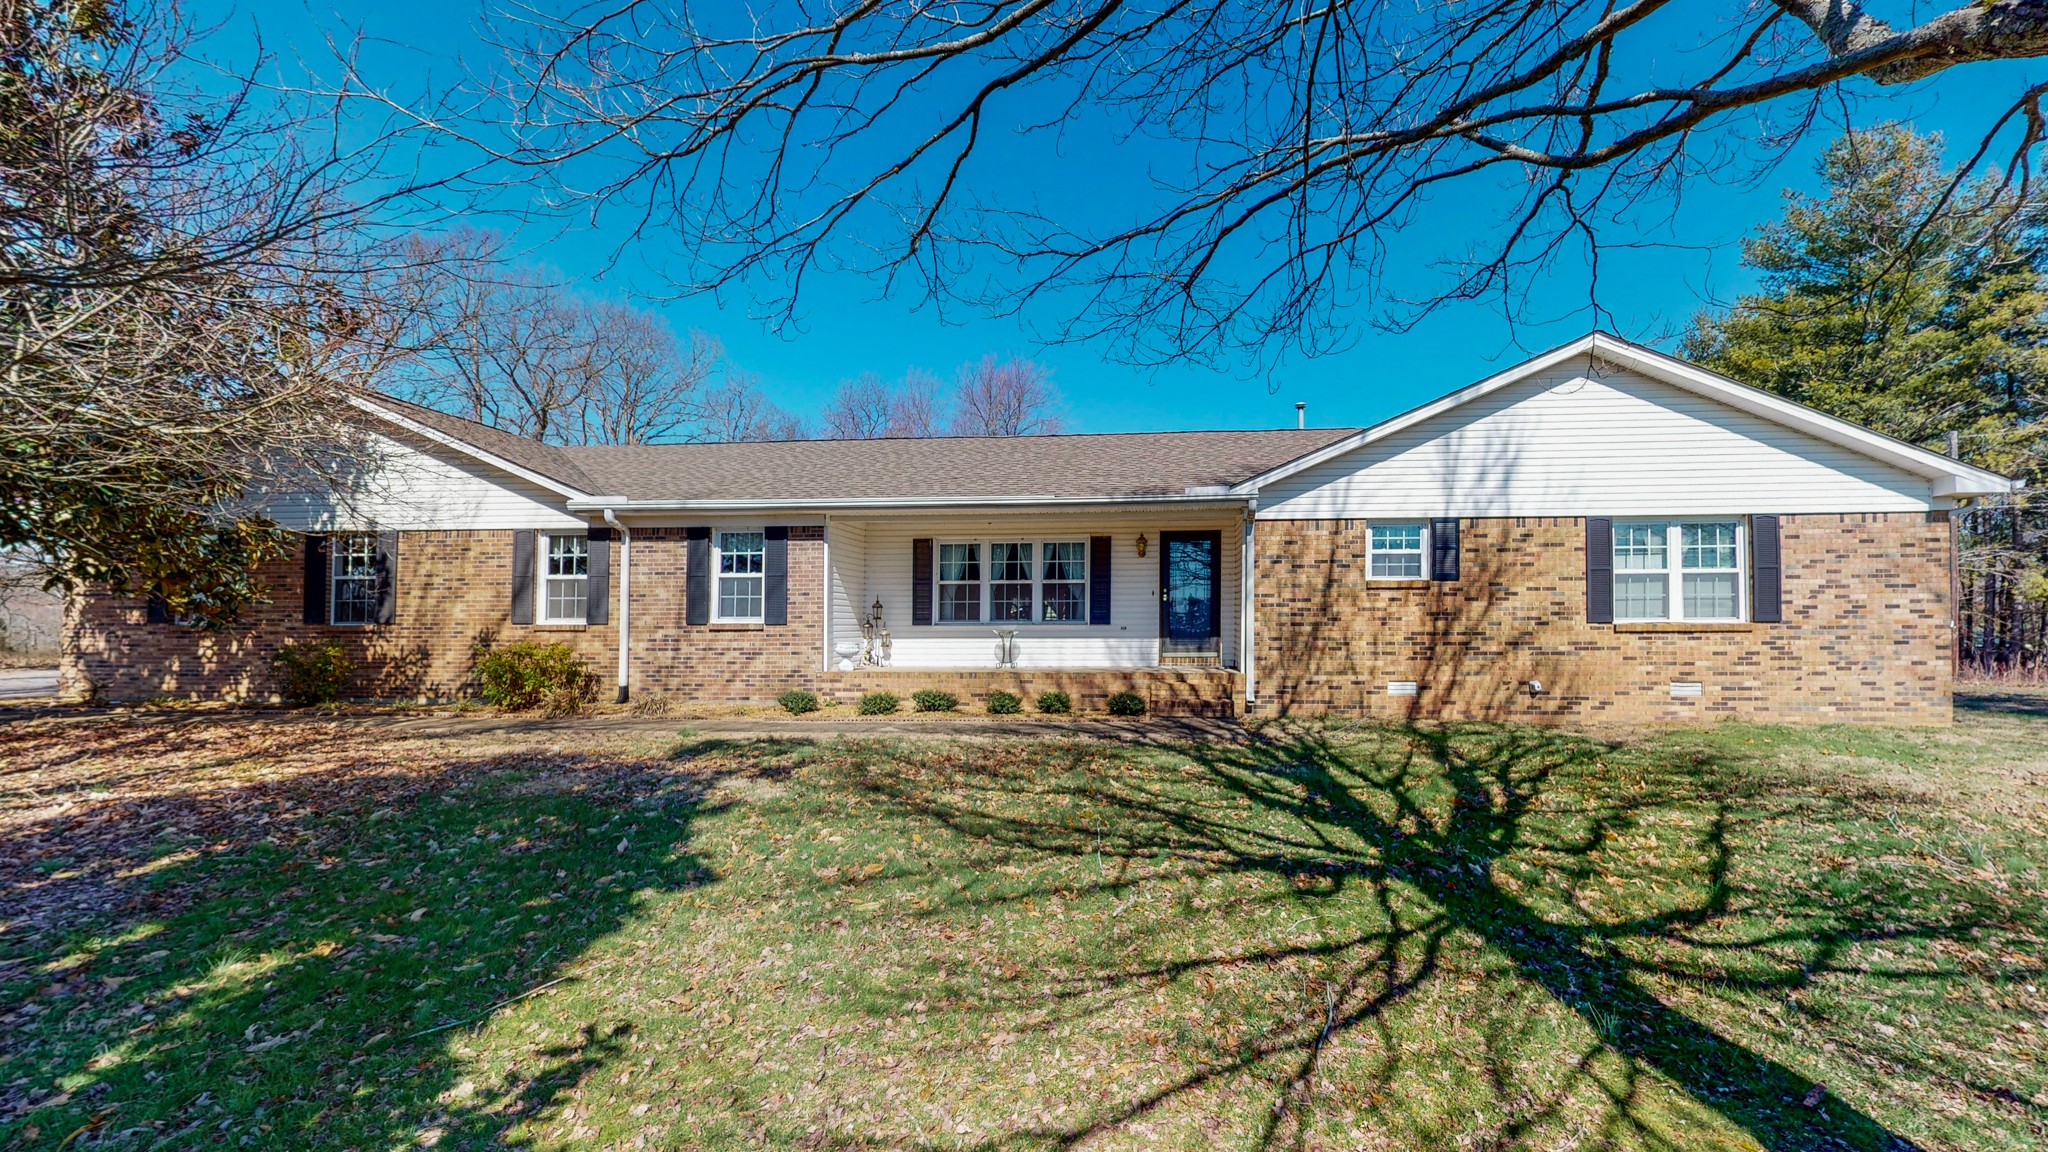 3020 Old Nashville Hwy, MC EWEN, TN 37101 - MC EWEN, TN real estate listing